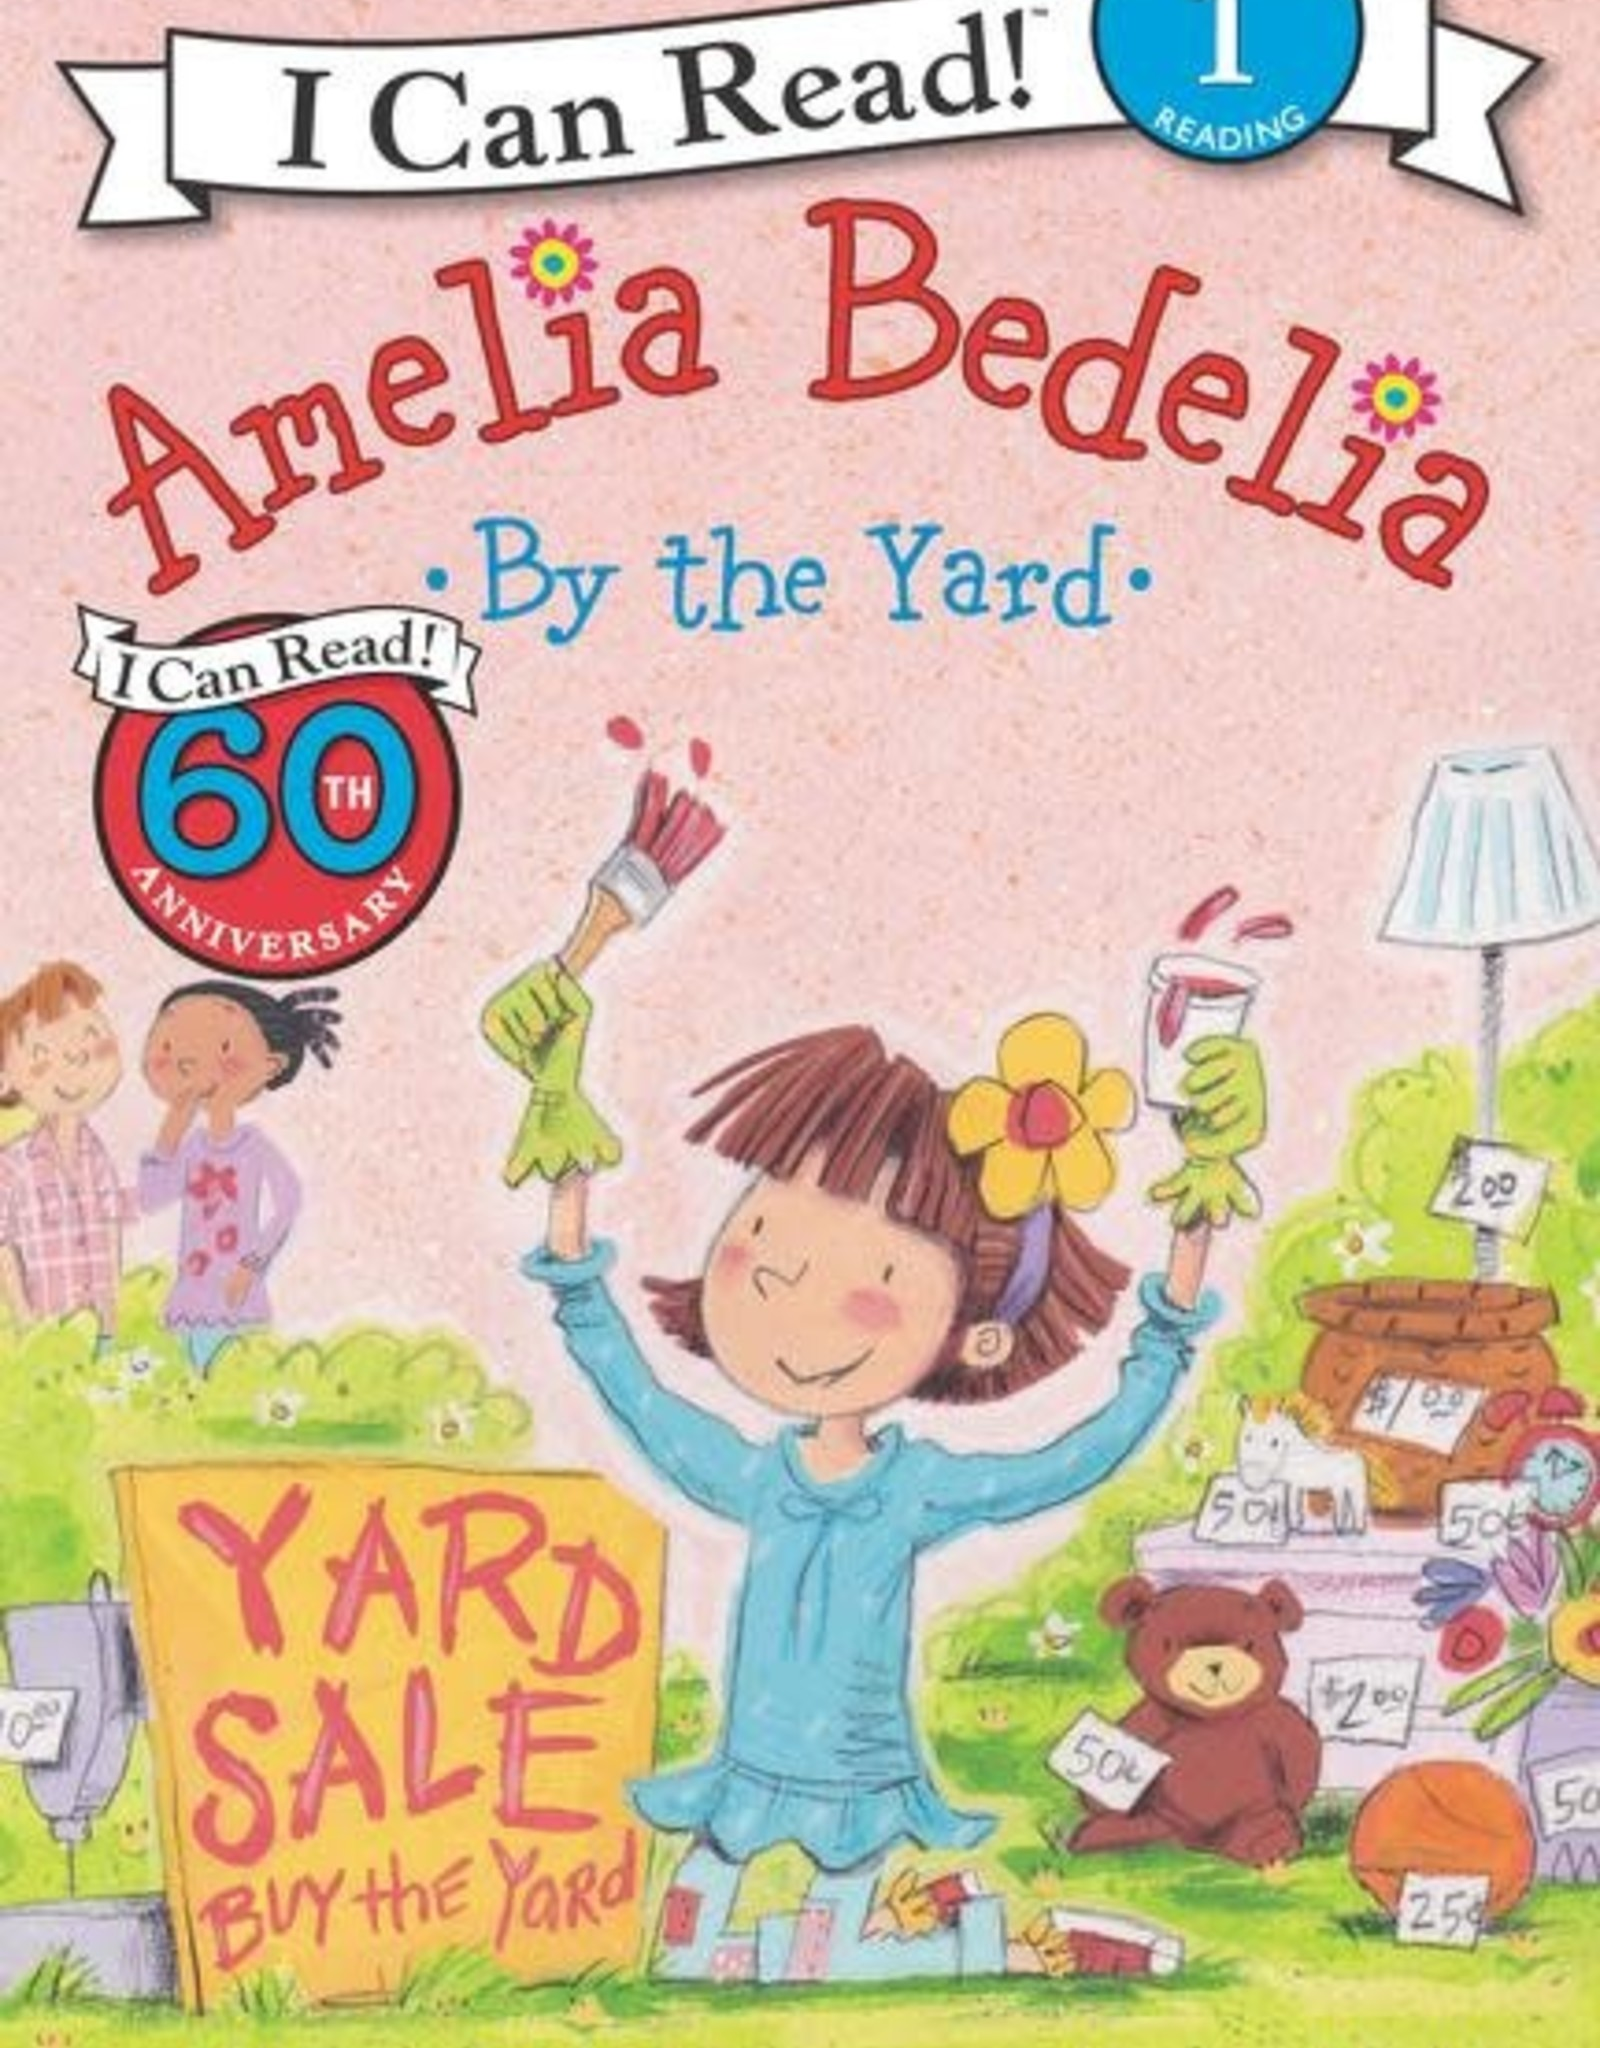 I Can Read! Amelia Bedelia By the Yard